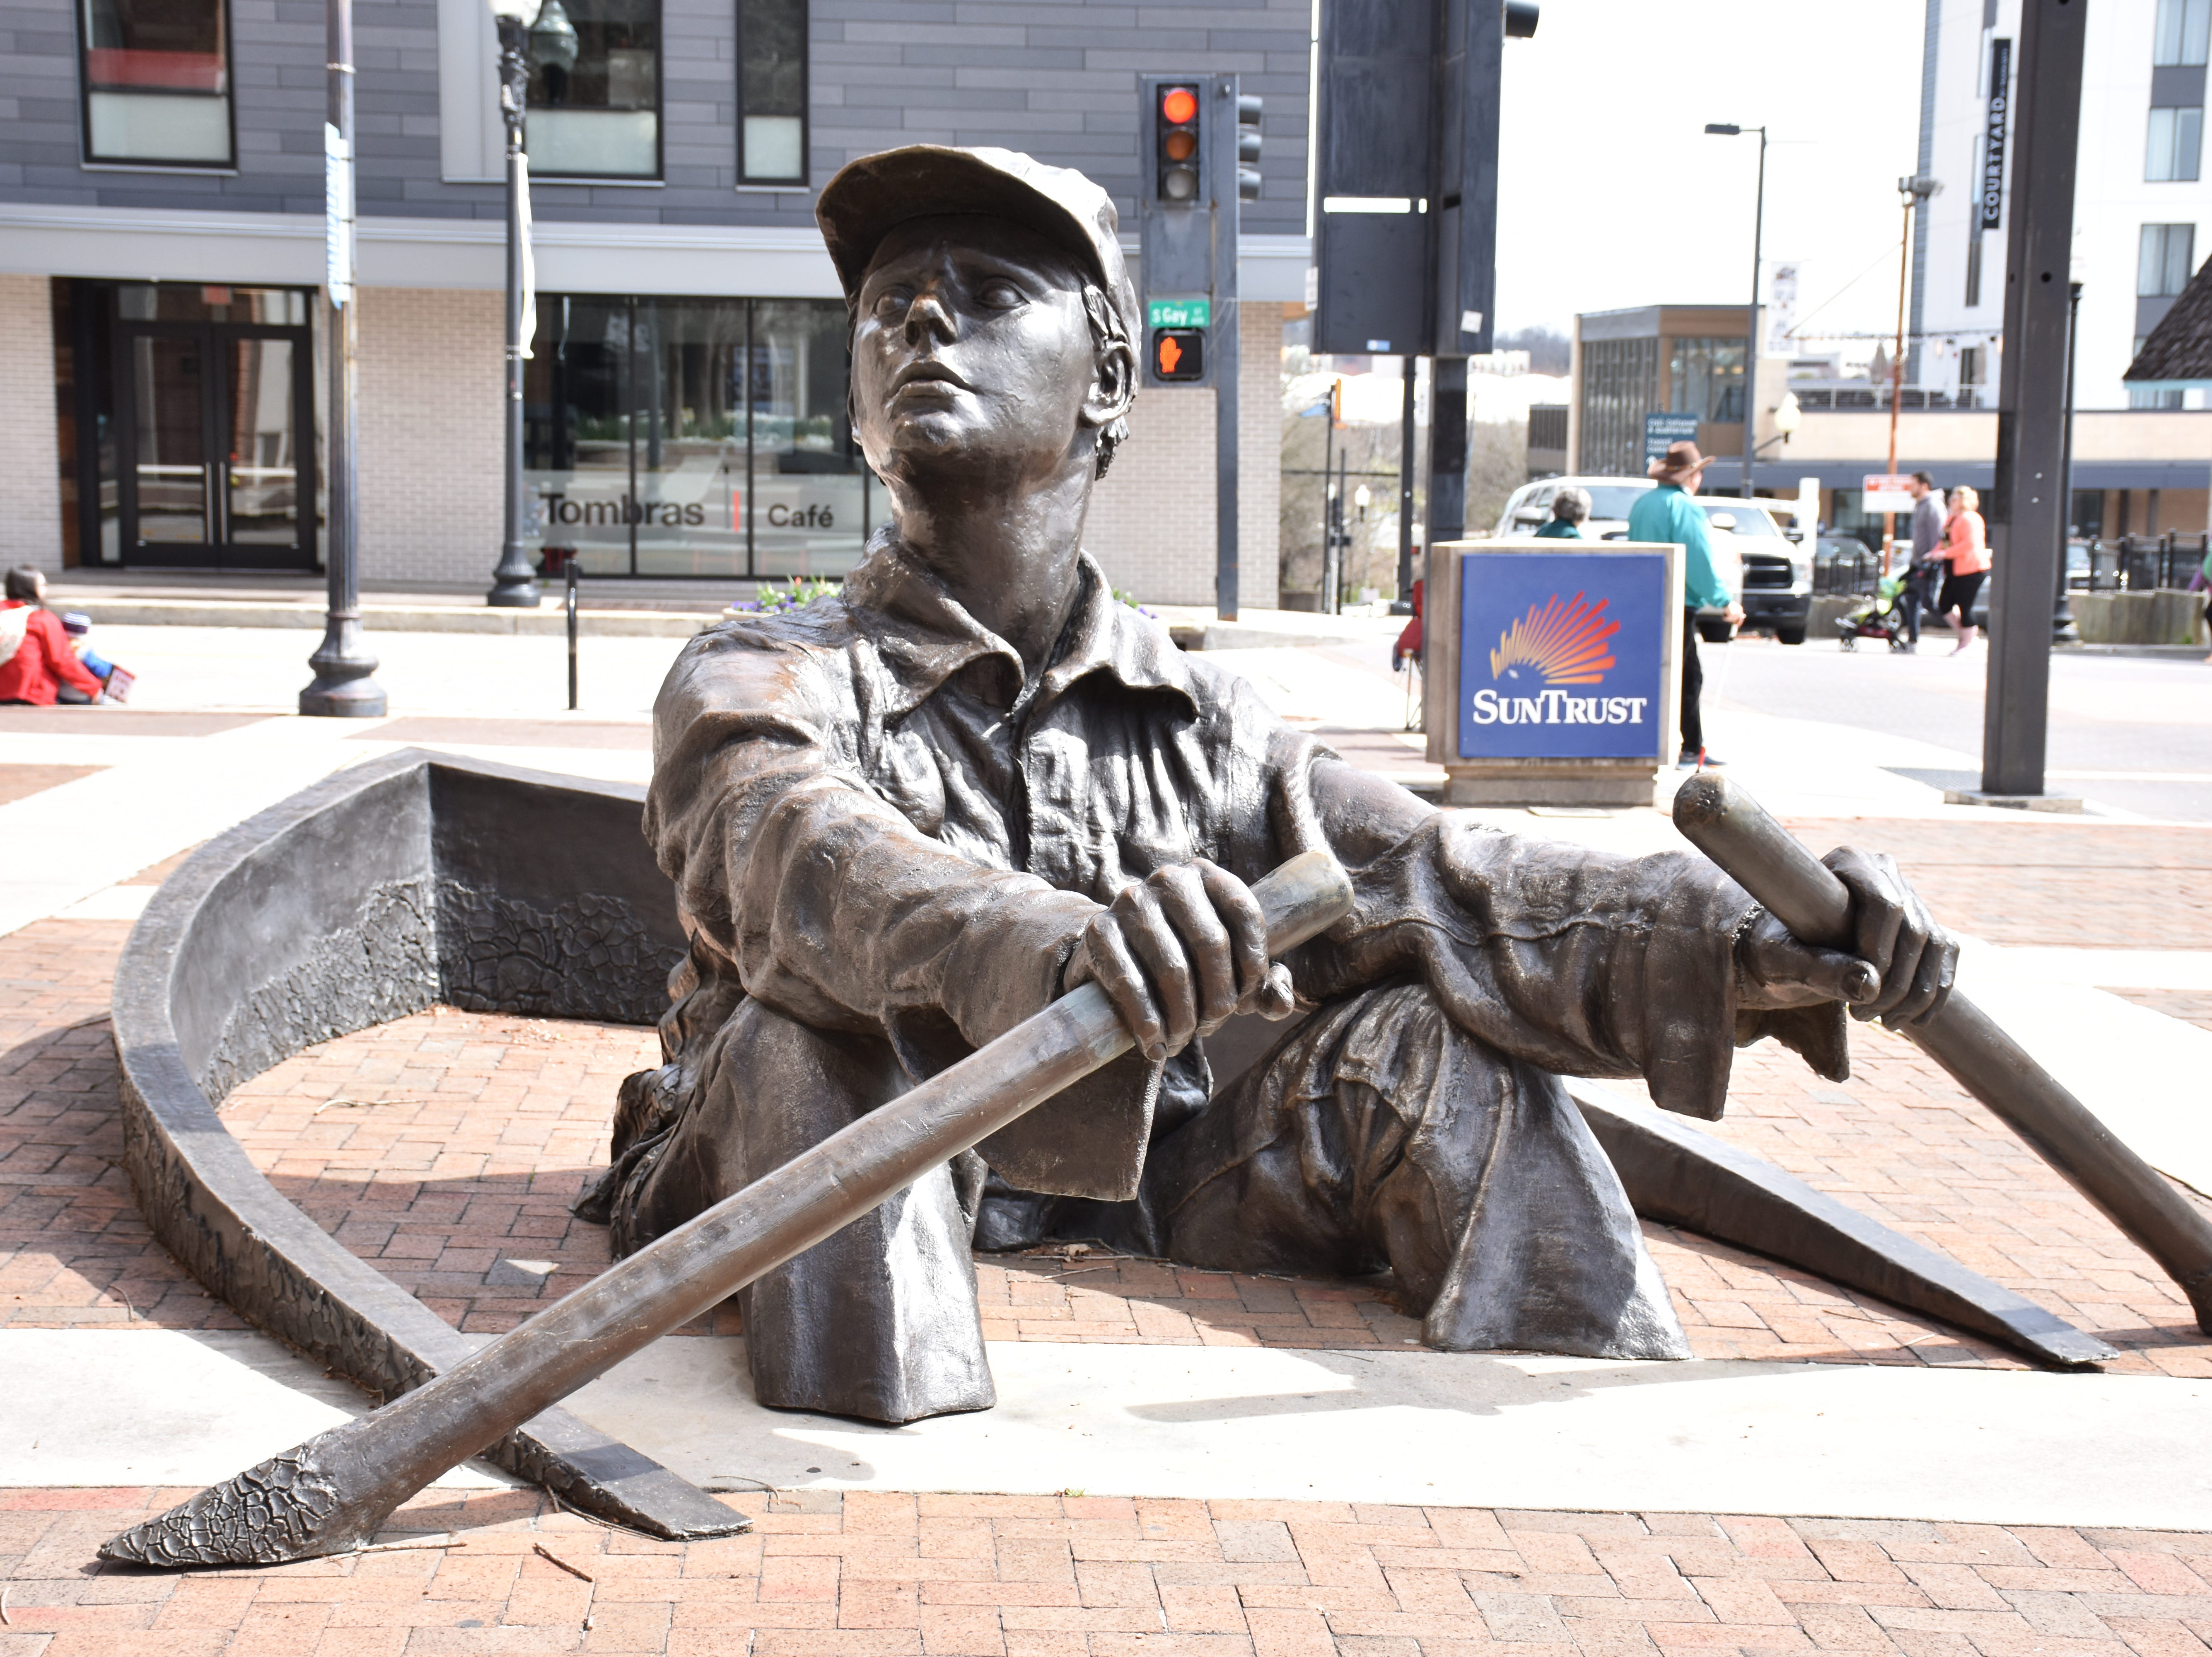 A giant bronze oarsman appears to paddle a boat that's half-submerged in the sidewalk at the corner of Church and Gay streets in downtown Knoxville. Sculpted by David L. Phelps in 1988, the statue is a popular spot for photos.